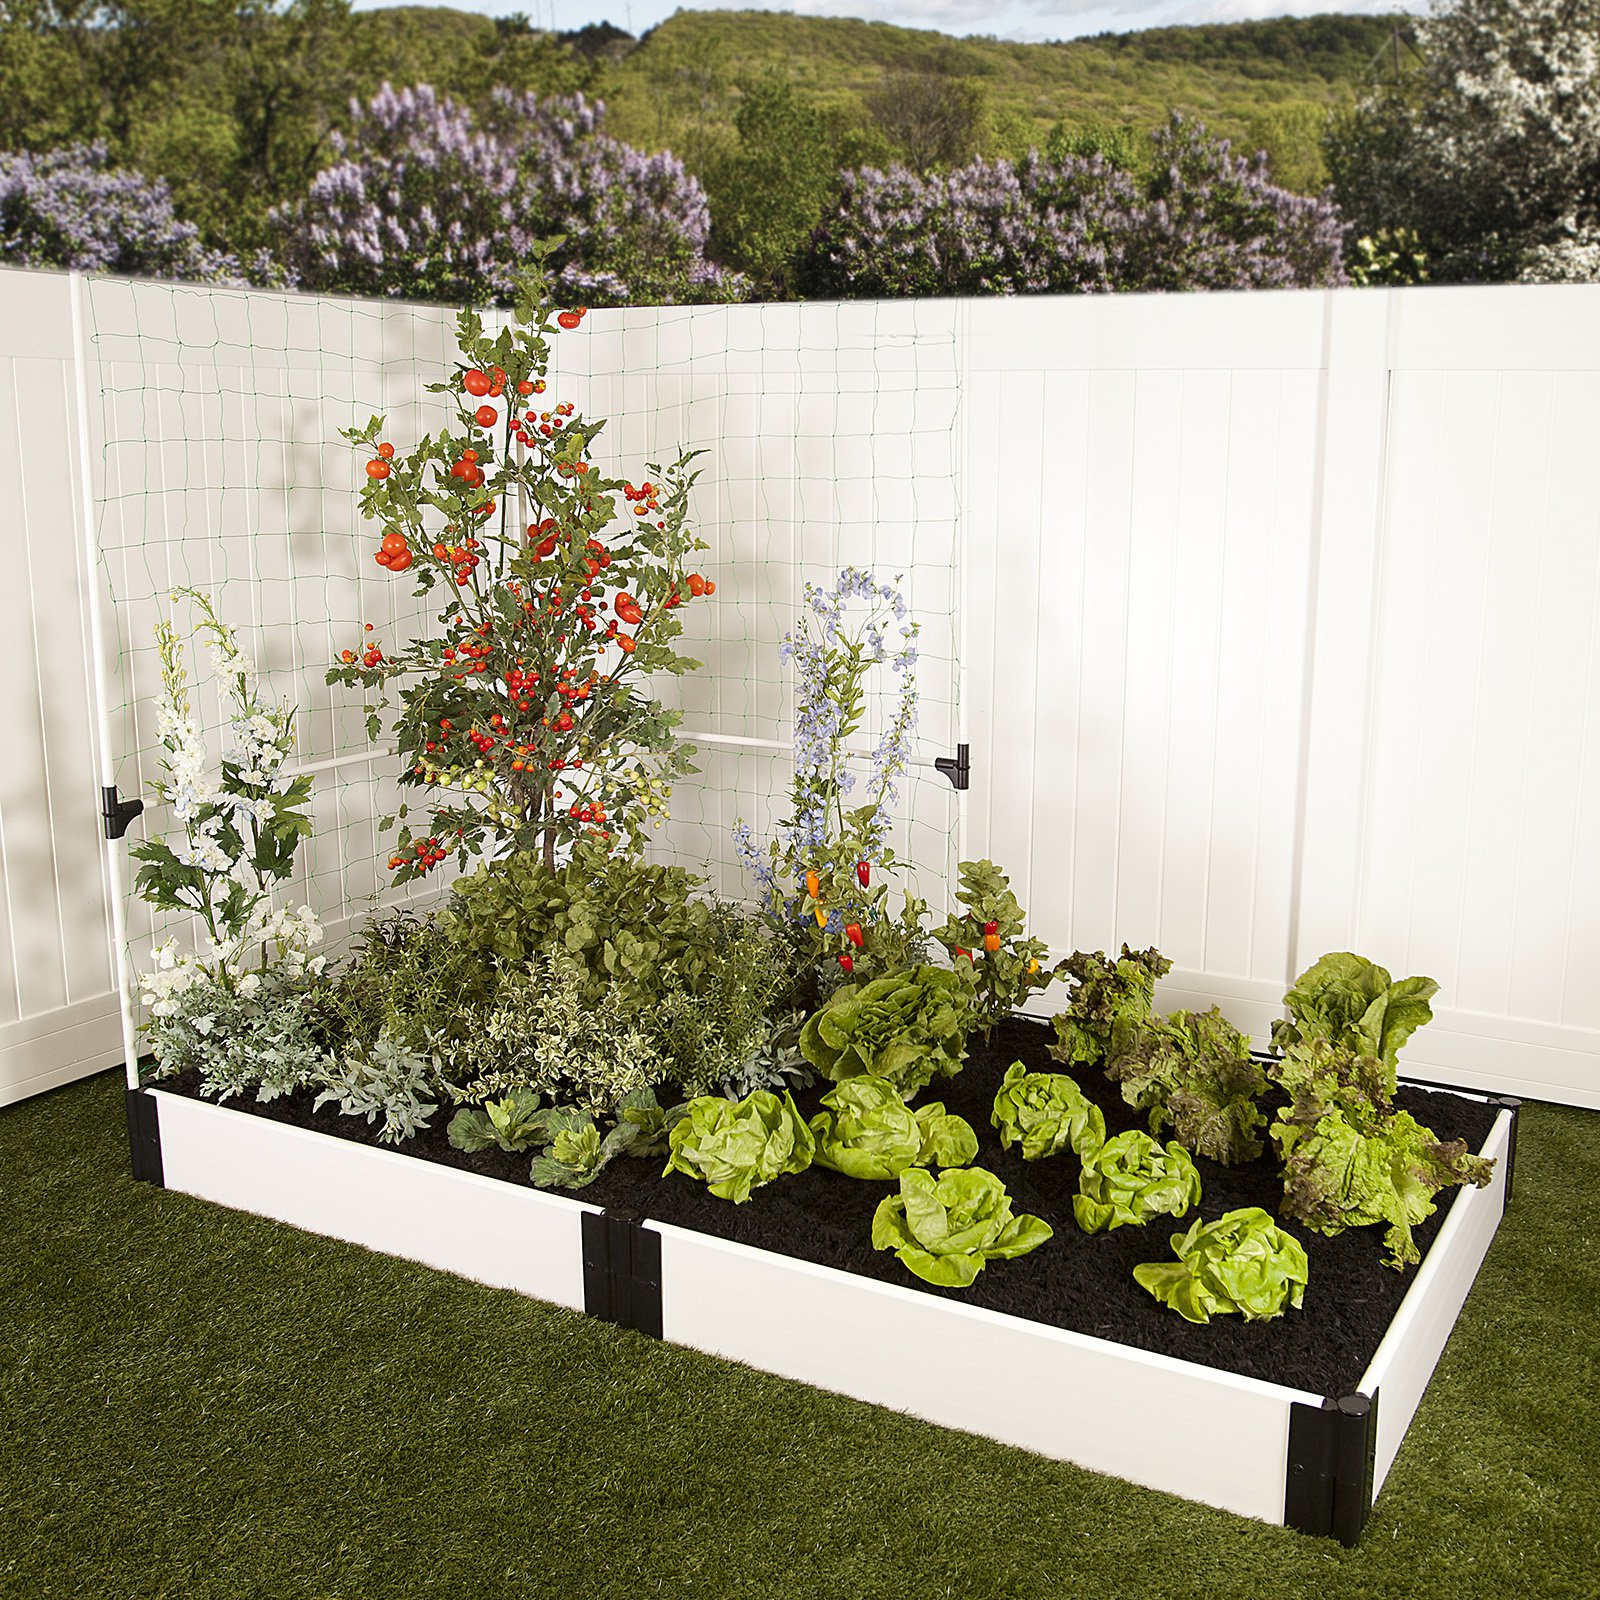 Frame It All White Composite Raised Garden Bed Kit with Veggie Wall - 4ft. x 8ft. x 8in.